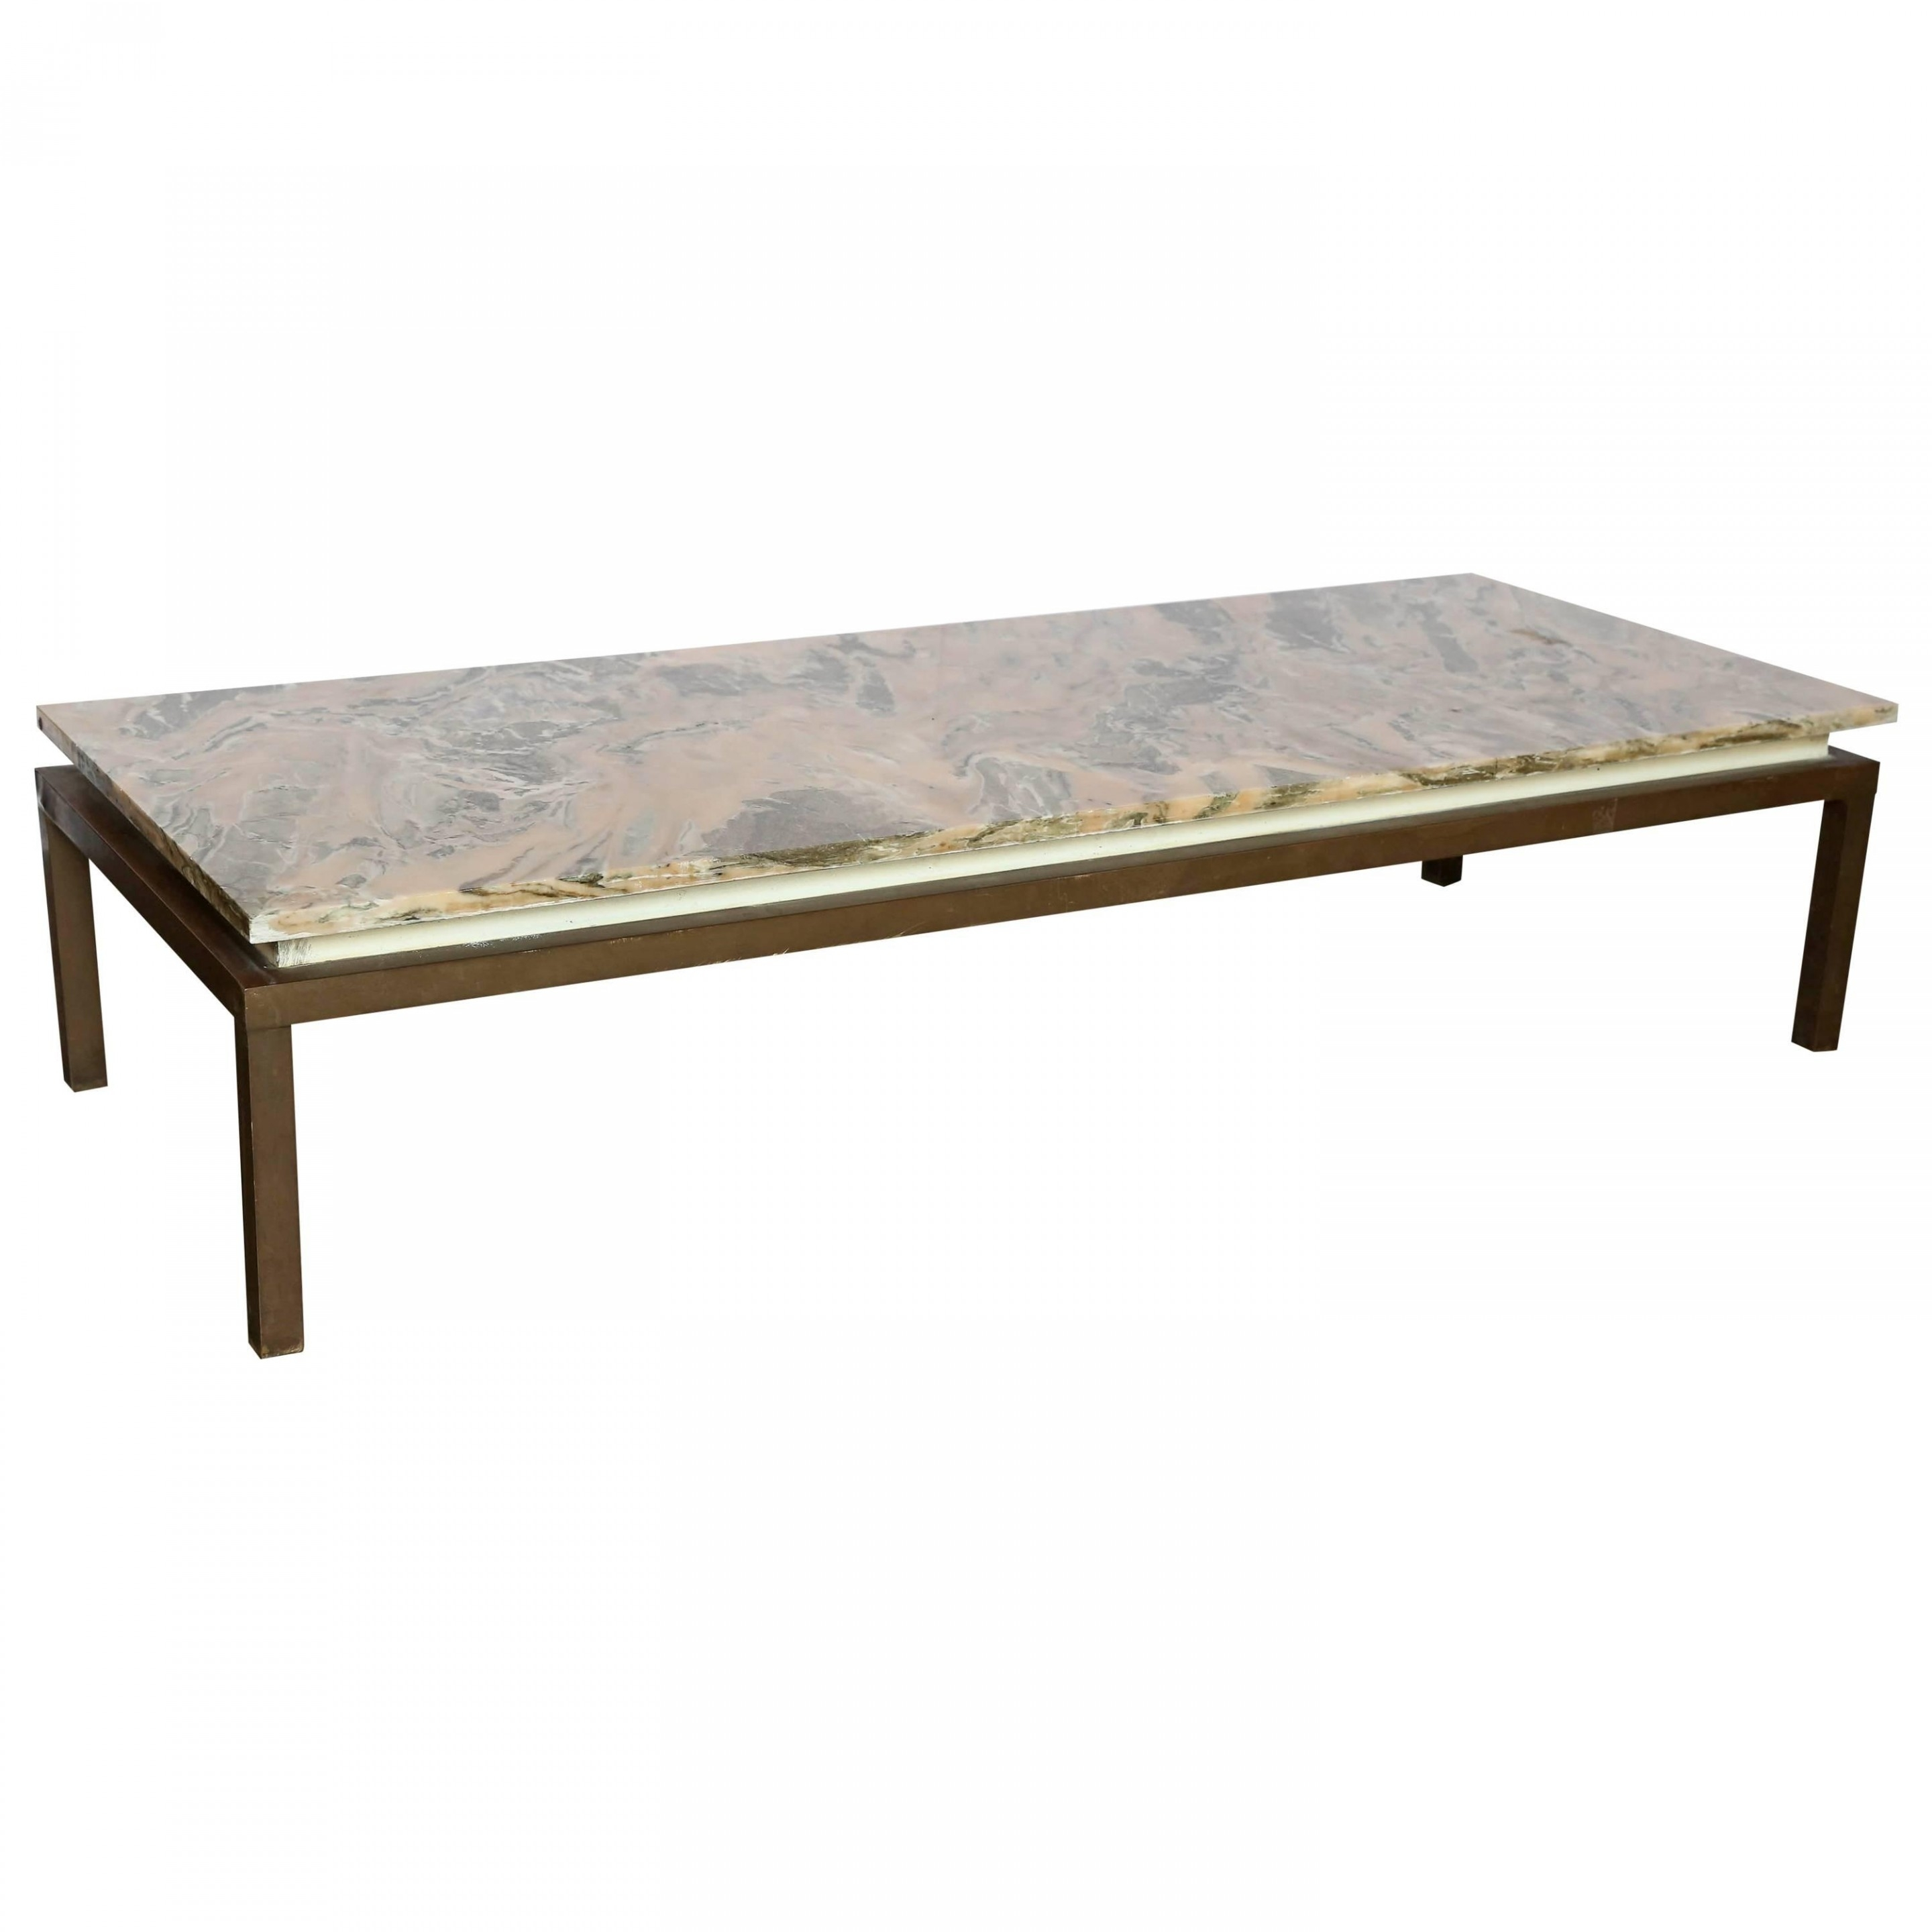 Vintage Industrial Coffee Table Lovely Mid Century Modern Marble intended for Mid-Century Modern Marble Coffee Tables (Image 30 of 30)